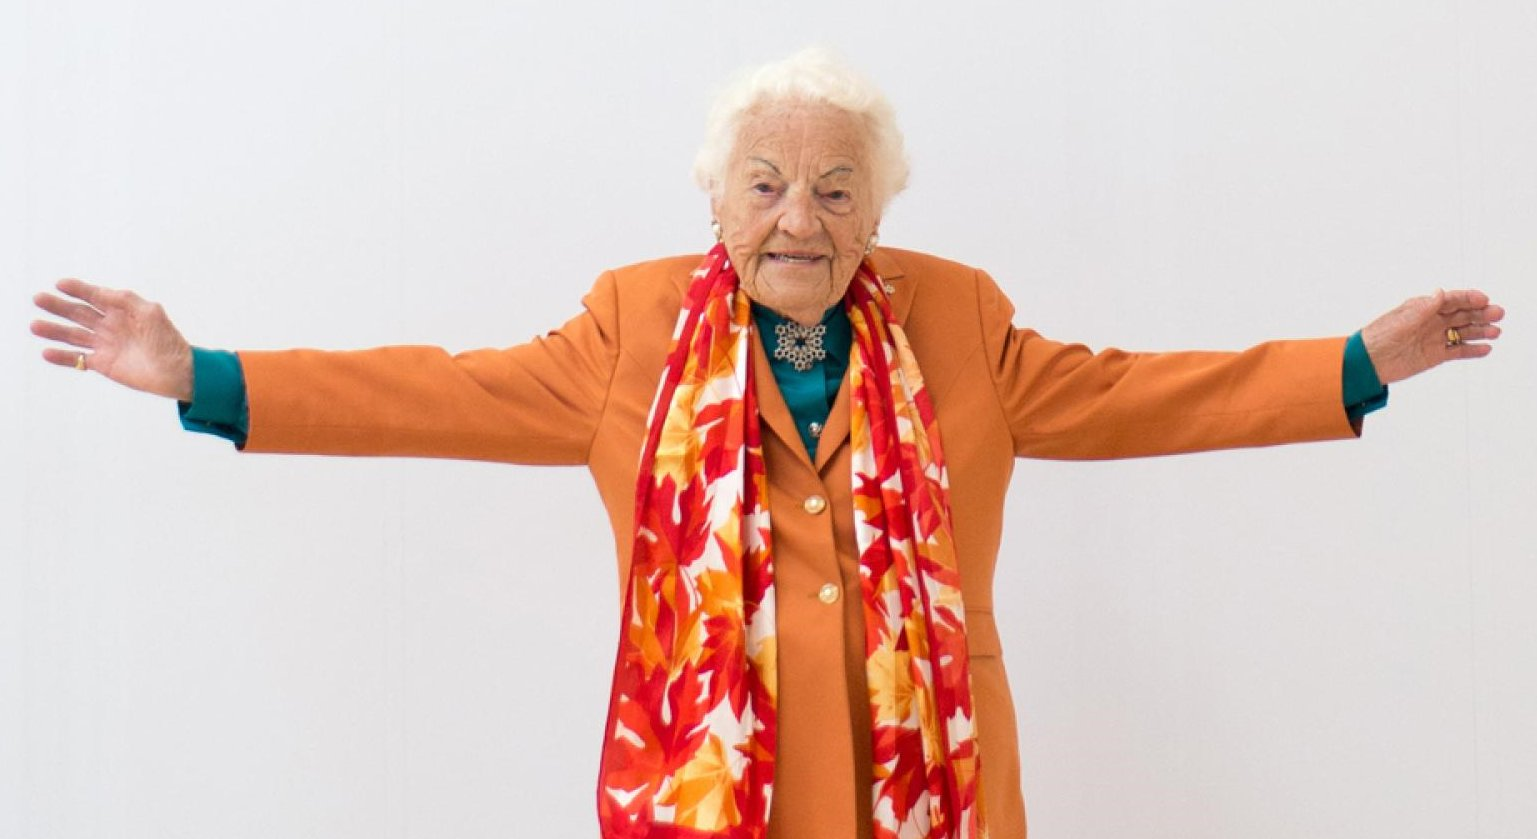 Hazel McCallion Do Your Homework Google image from https://culture.mississauga.ca/event/bradley-museum/do-your-homework-tribute-hazel-mccallion-exhibition